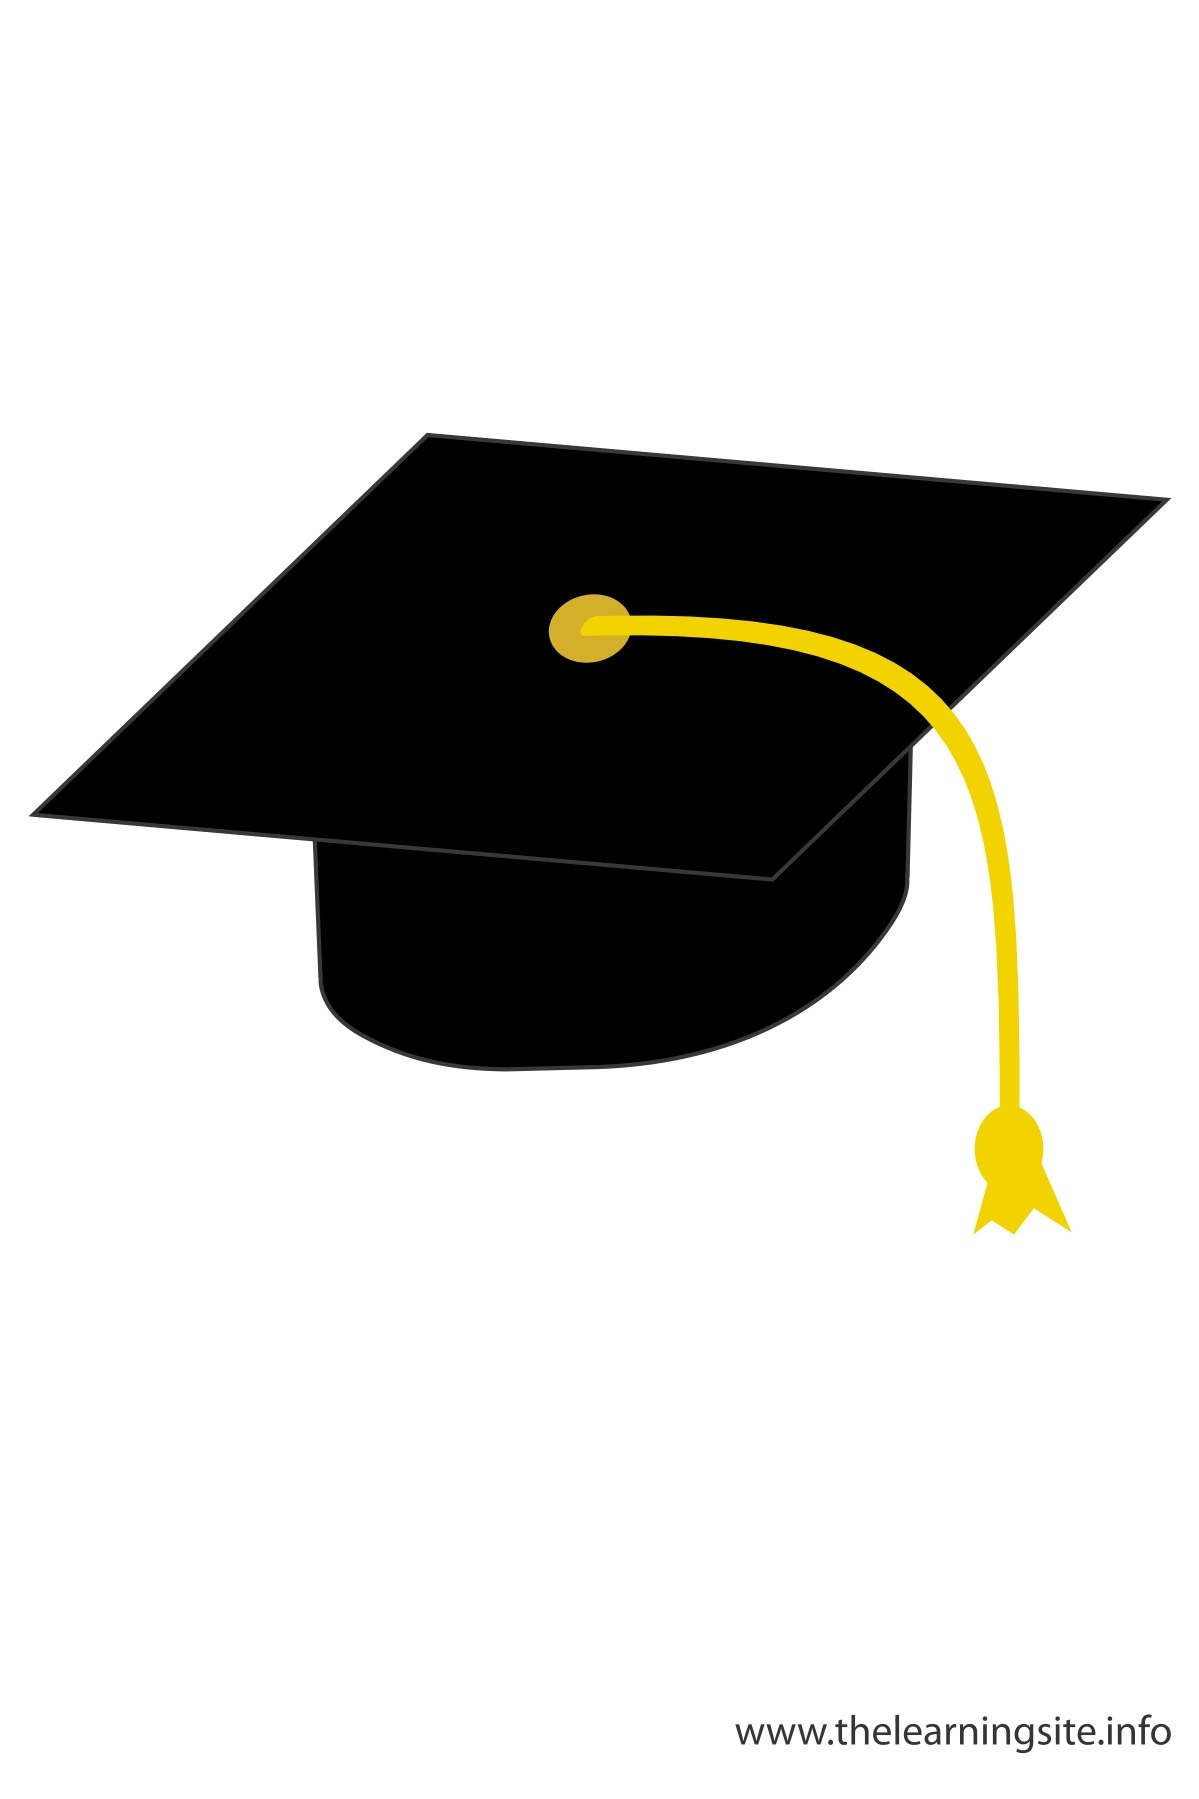 Graduation Images Free | Free Download Best Graduation Images Free - Graduation Clip Art Free Printable